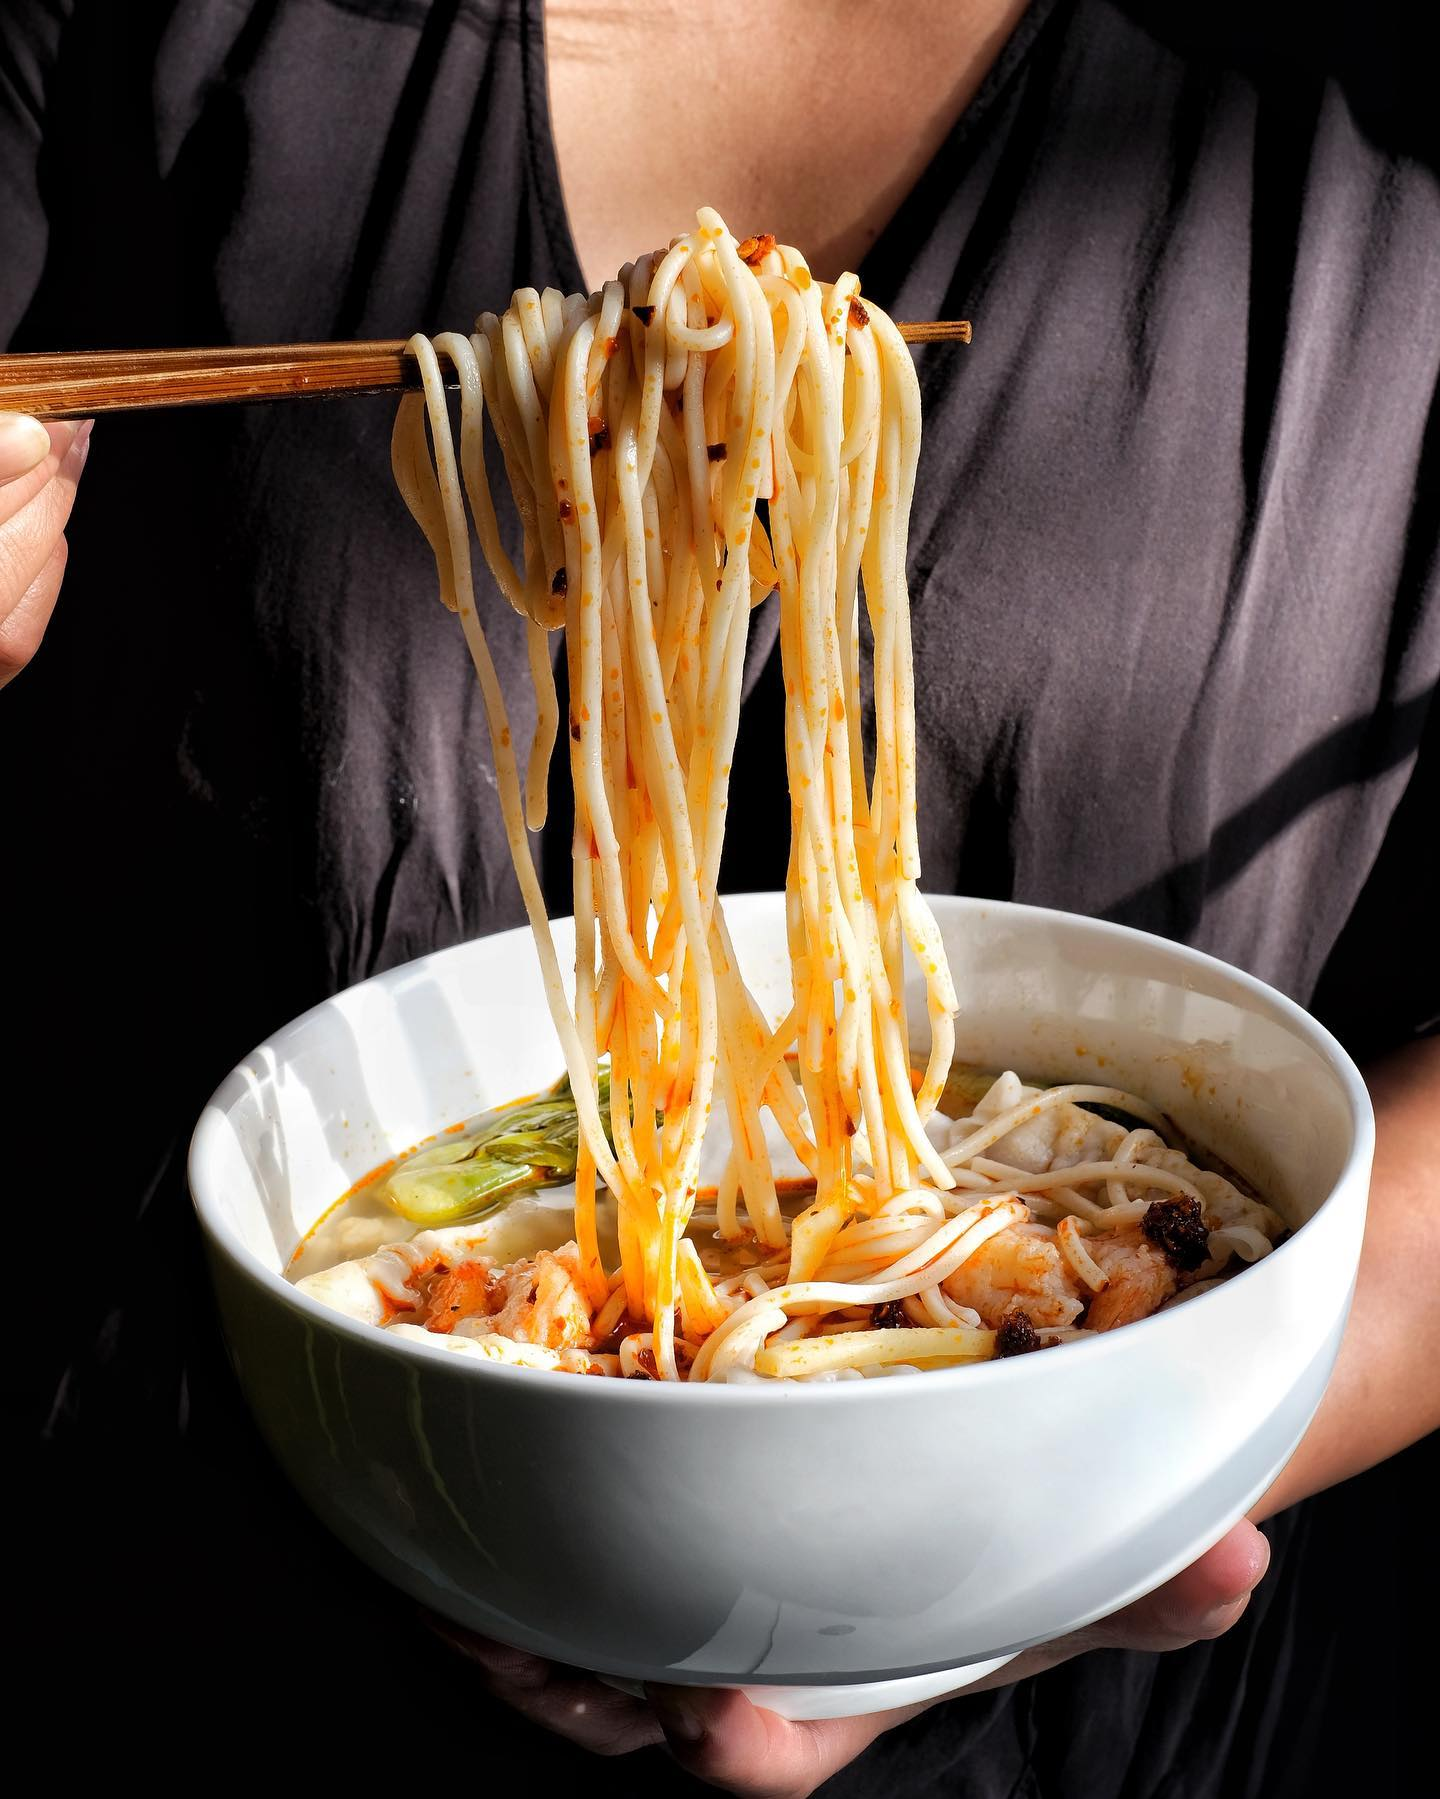 A person lifting noodles from a full bowl using chopsticks